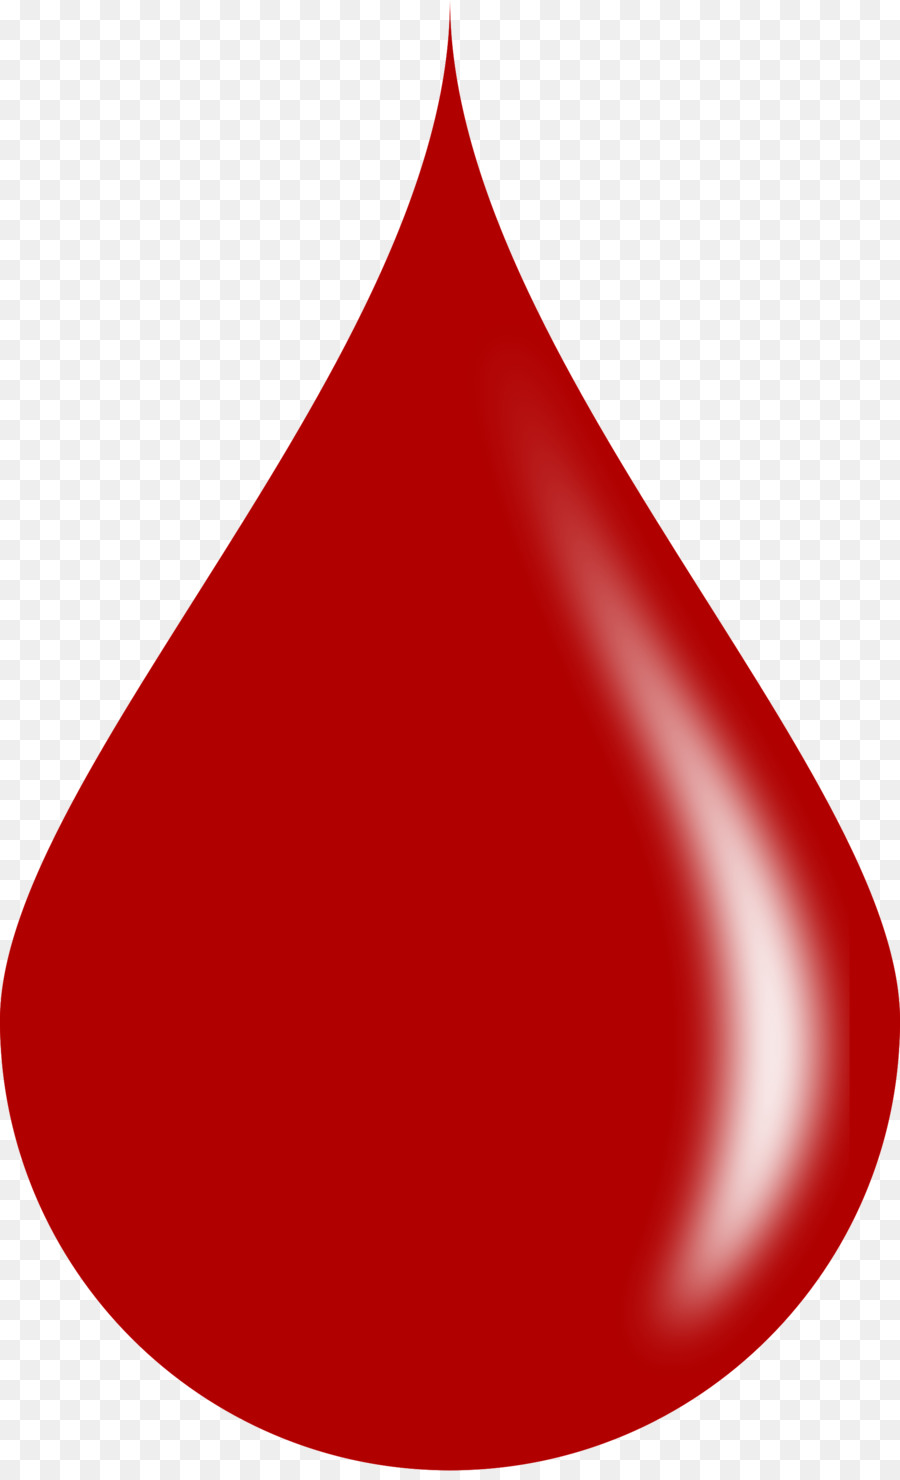 Blood clipart blood drop. Red background transparent clip